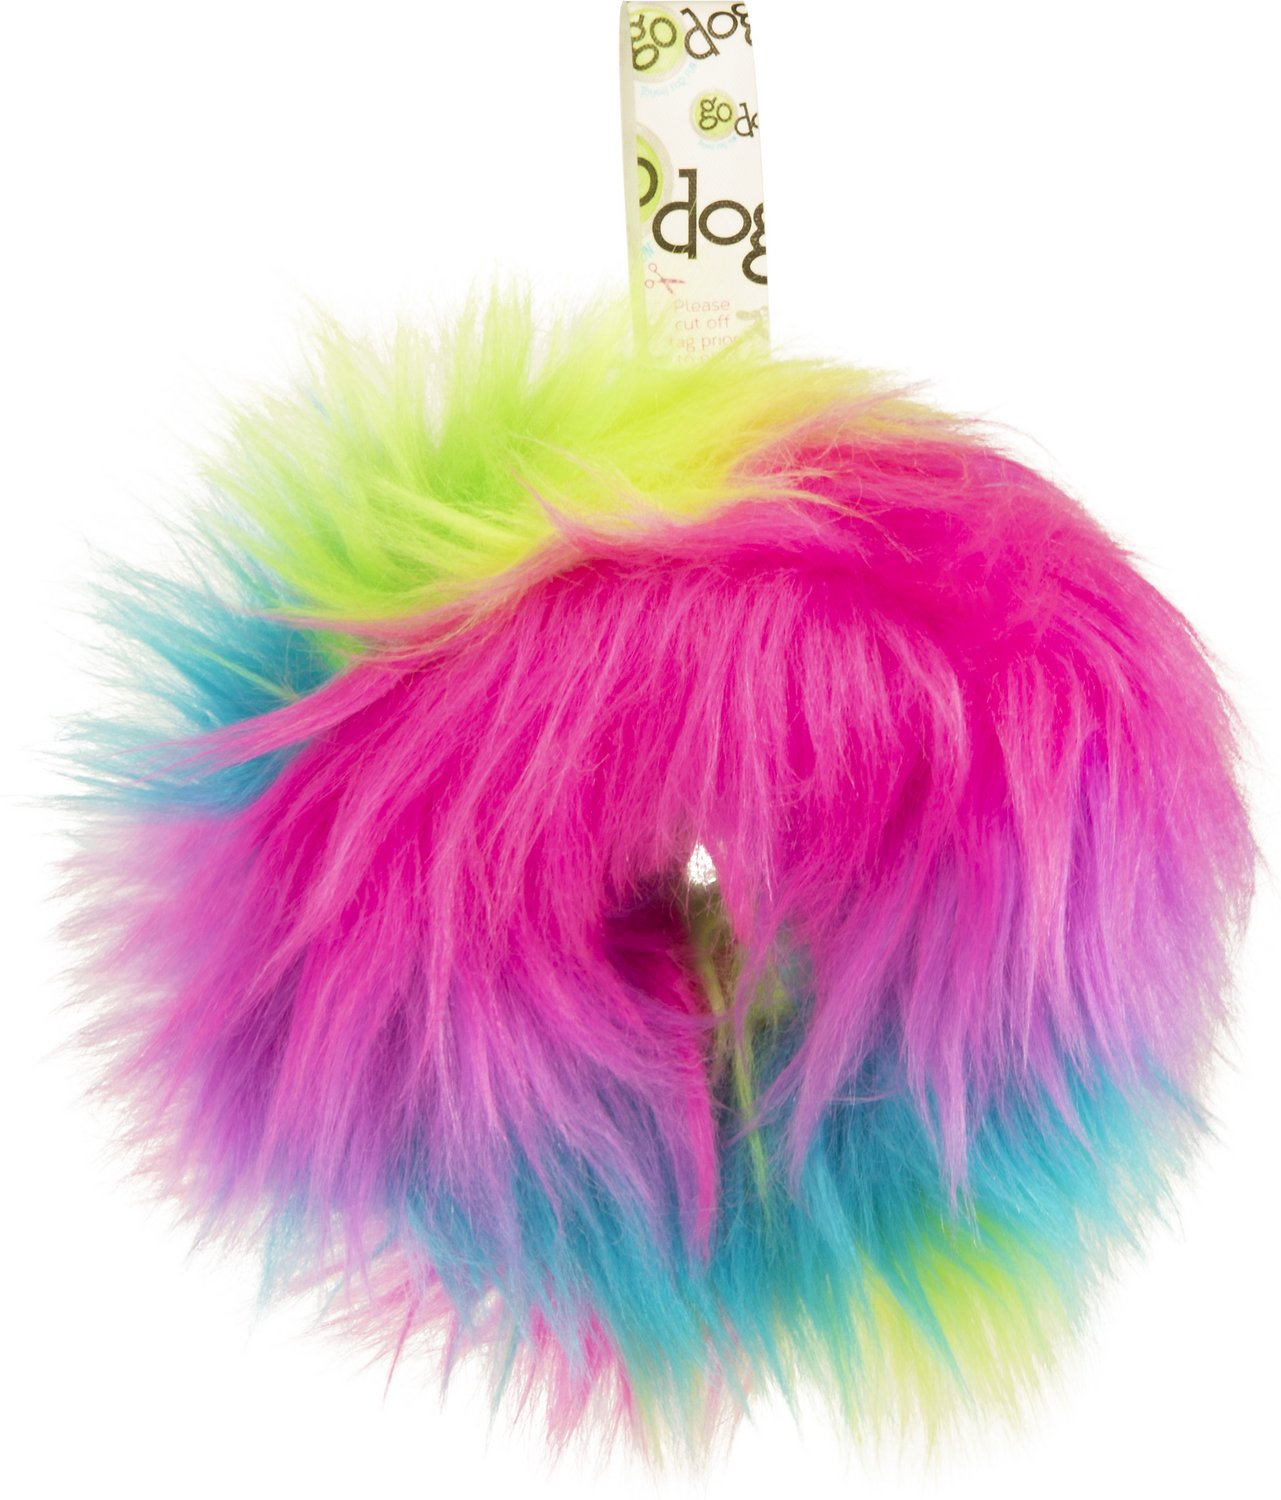 GoDog Furballz Rings Chew Guard Dog Toy, Rainbow, Medium